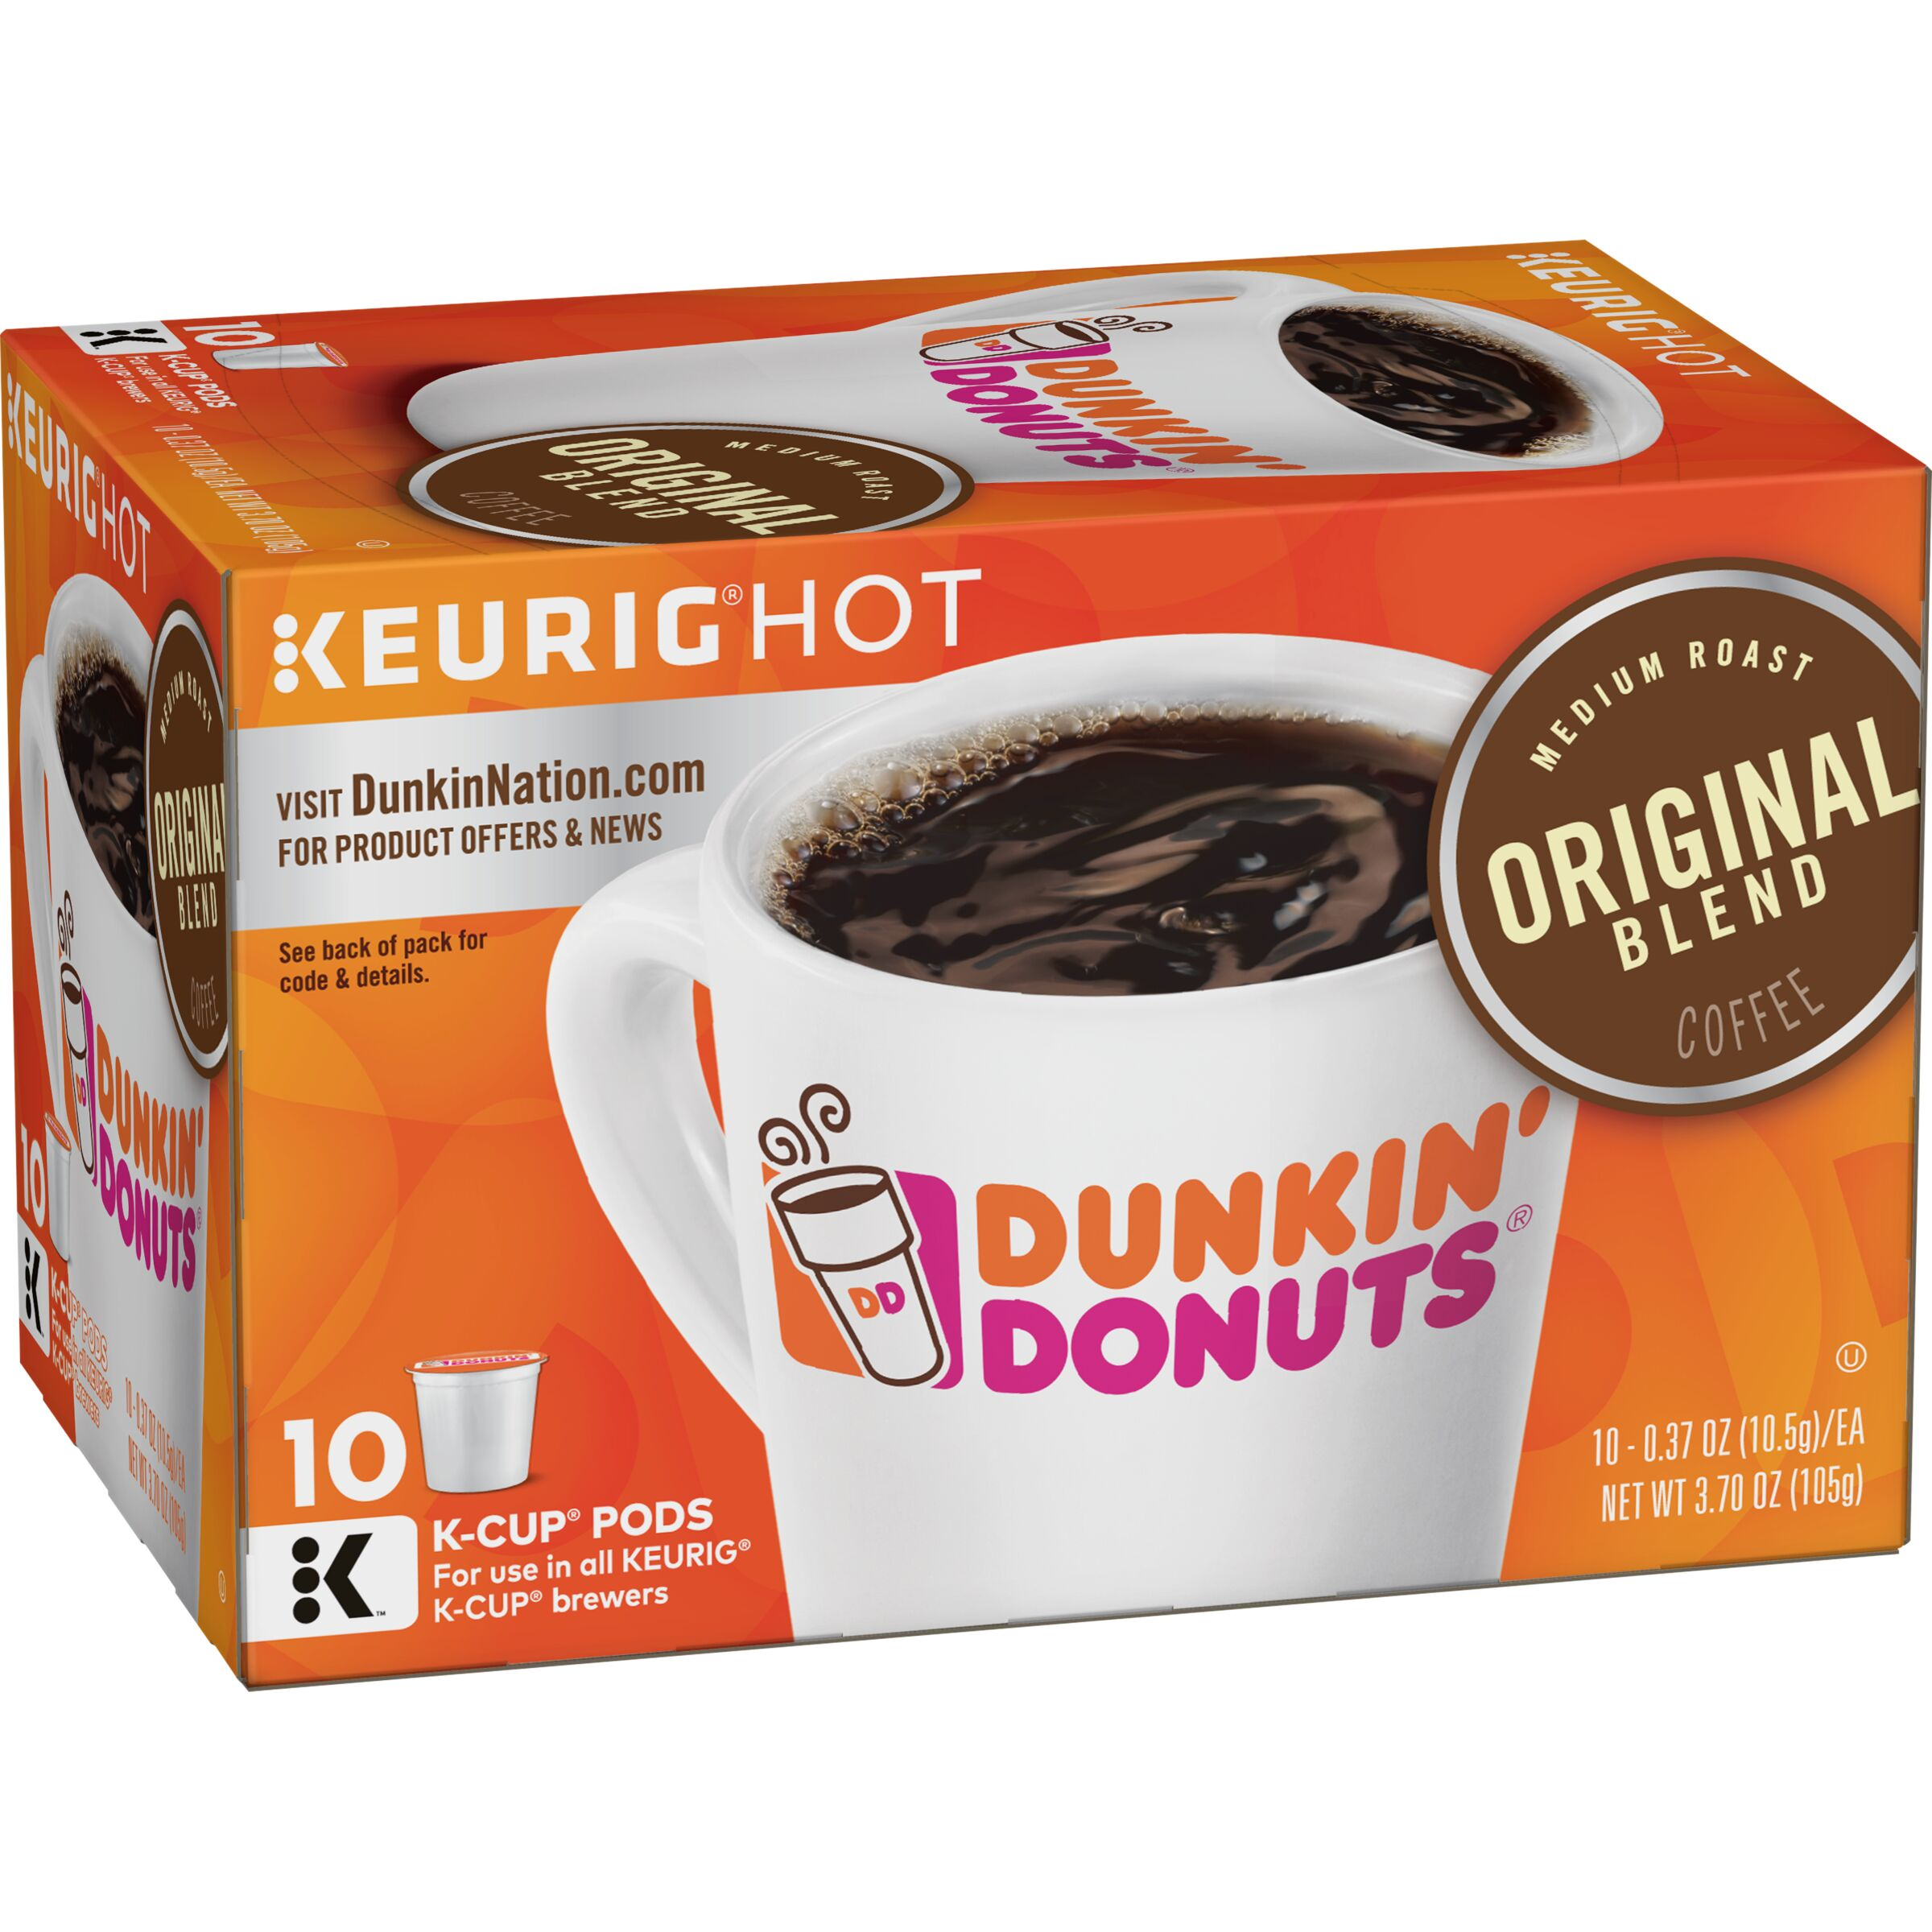 Dunkin' Donuts<sup>&reg;</sup>  Original Blend K-Cup Pods, 10 Count